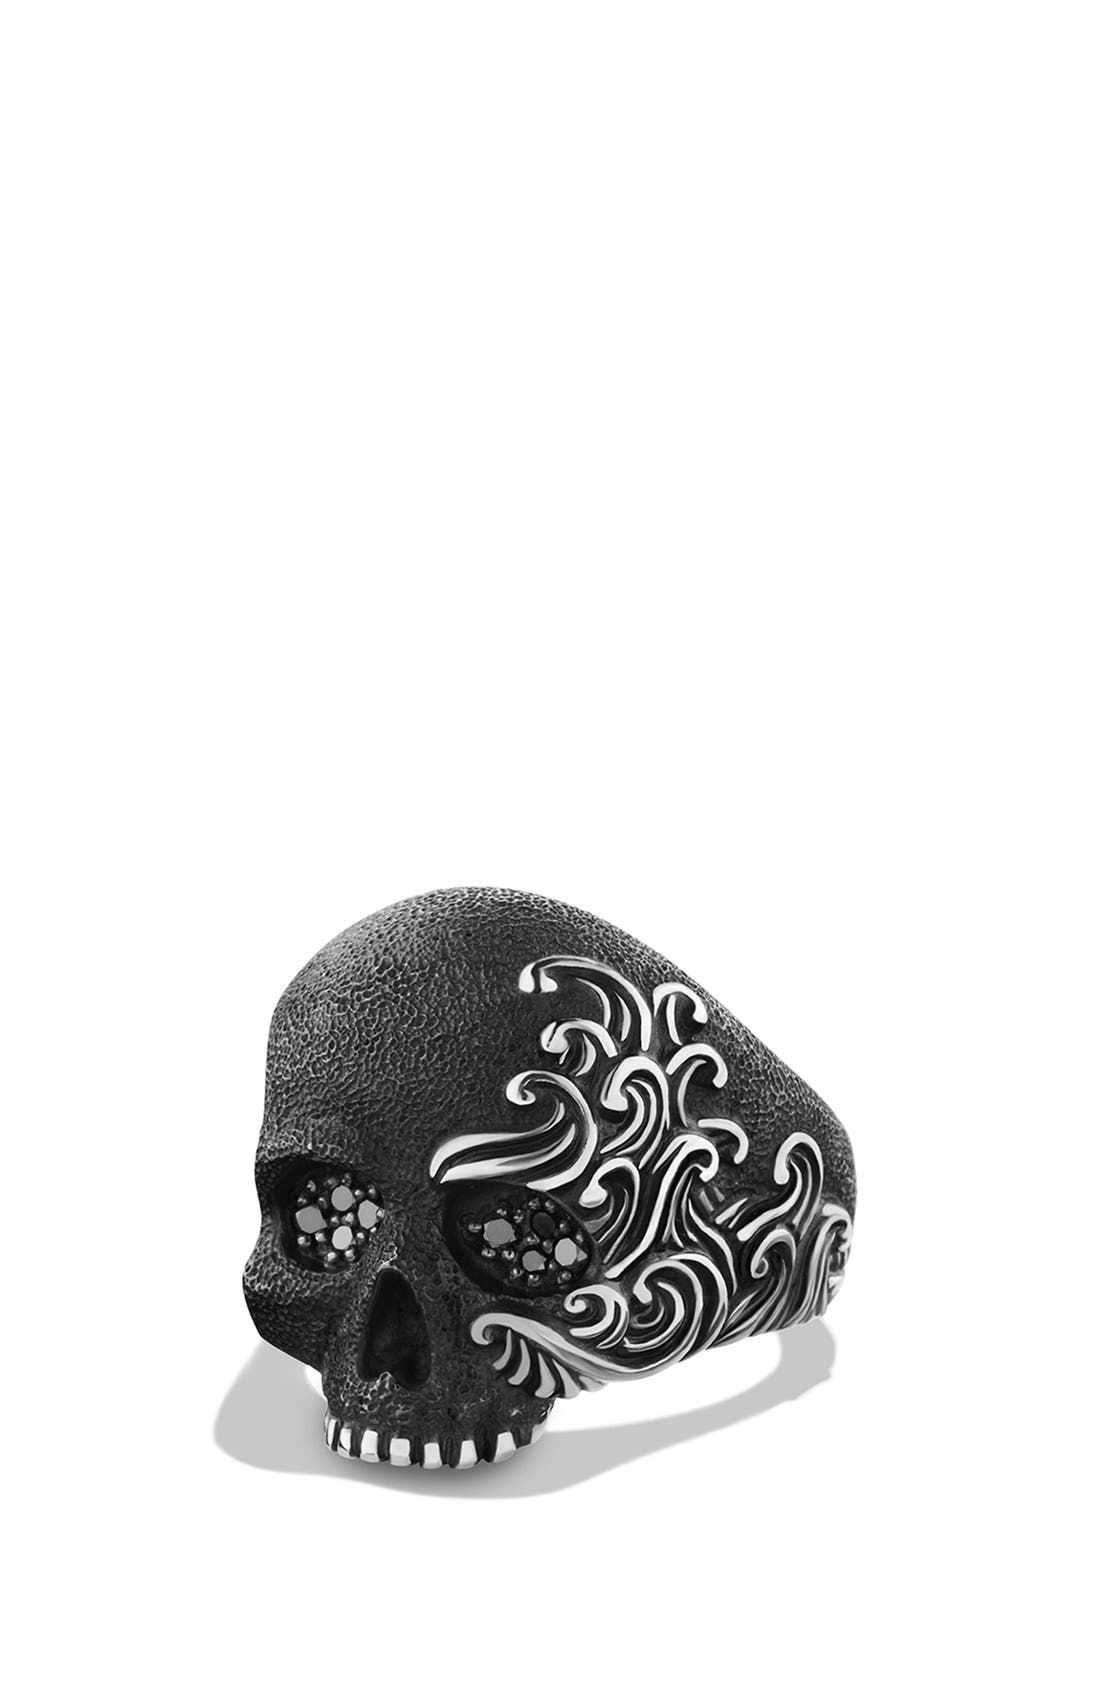 'Waves' Large Skull Ring with Black Diamonds,                         Main,                         color, Black Diamond